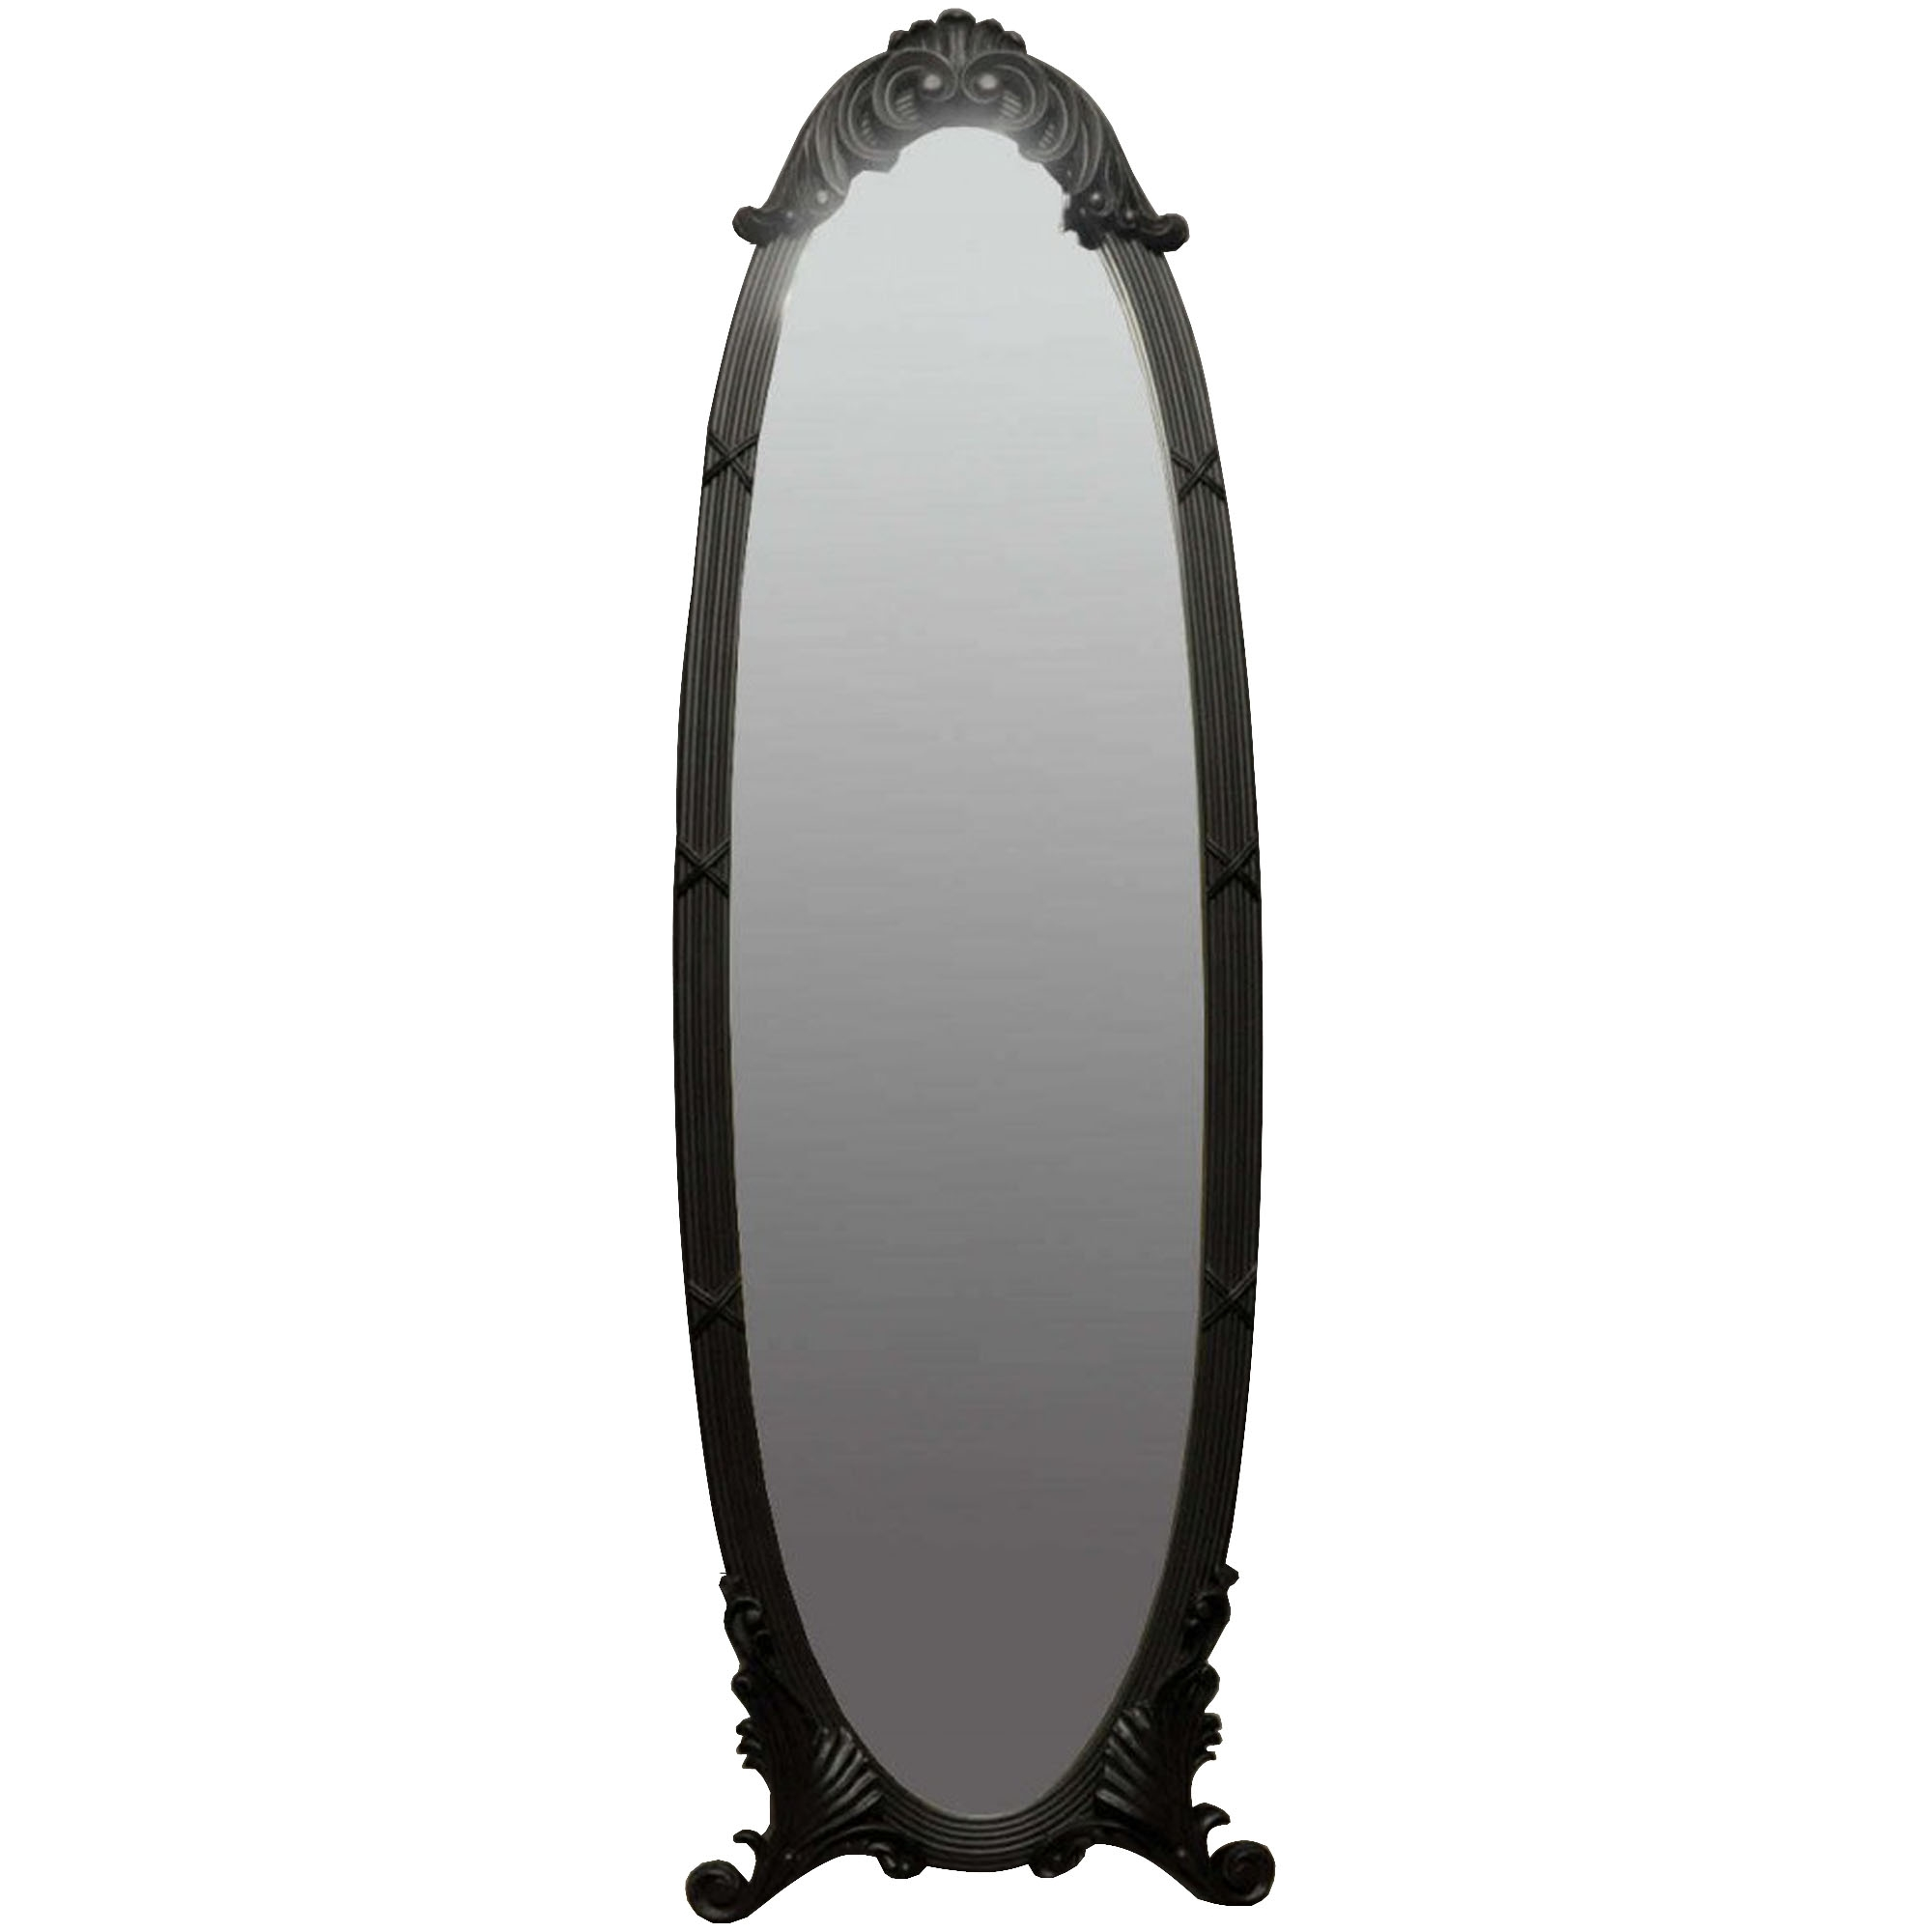 Antique French Style Matte Black Cheval Mirror Cheval Mirrors